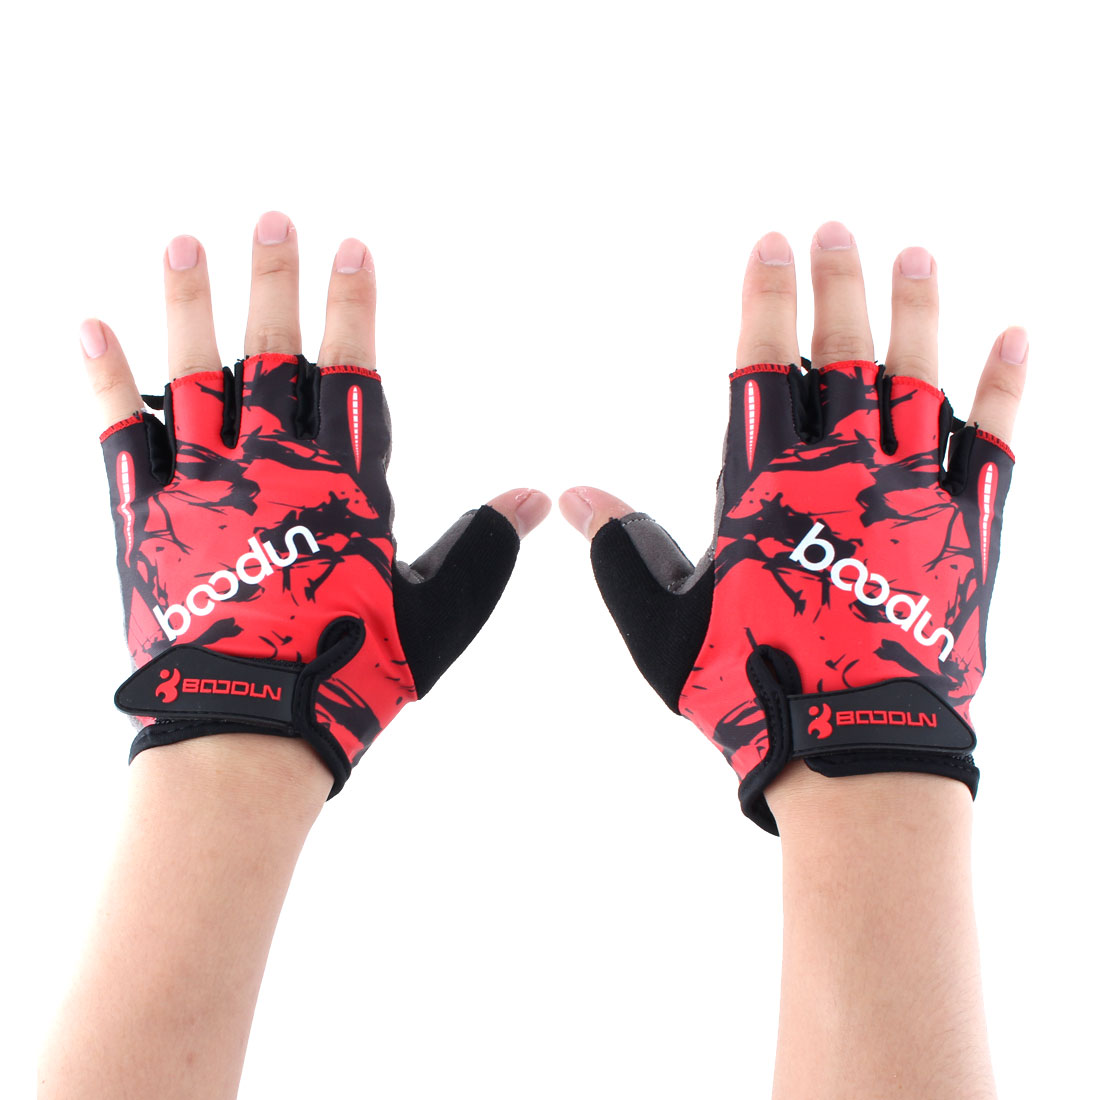 BOODUN Authorized Polyester Exercise Sports Lifting Training Building Protector Half Finger Fitness Gloves Red S Pair